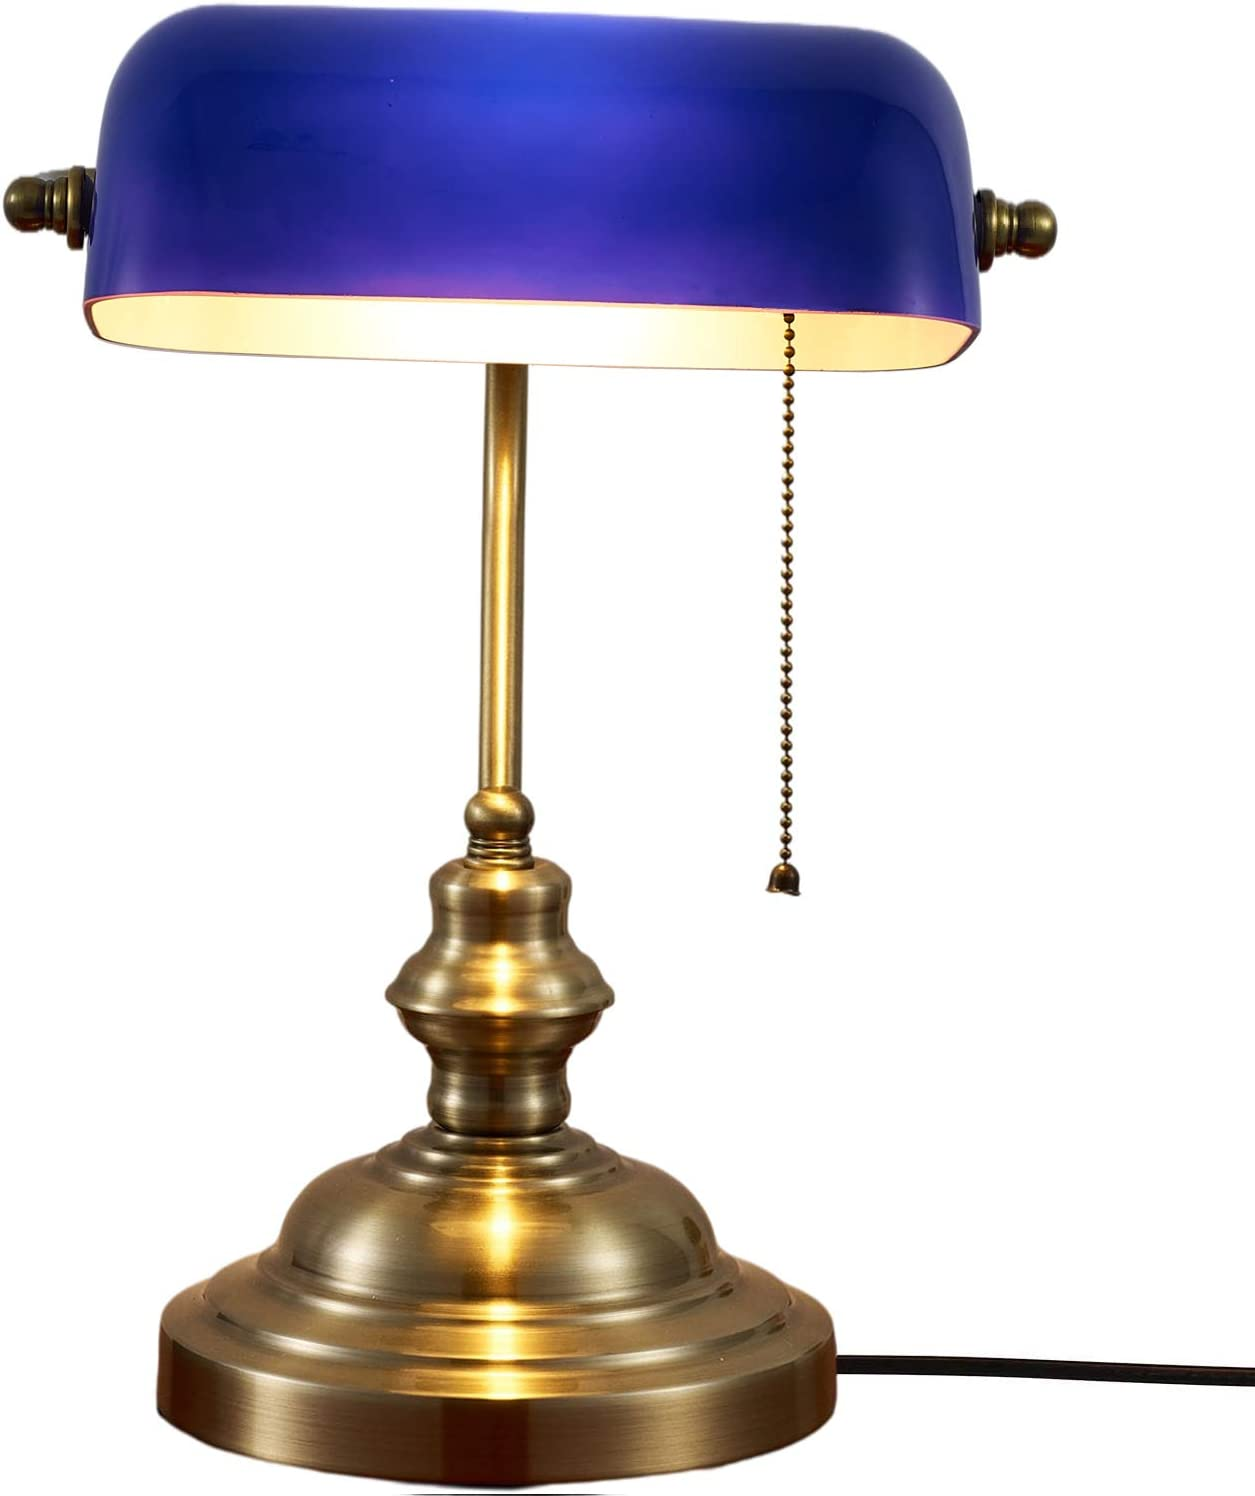 Classic Retro Bankers Lamp Traditional Pull Chain Switch Green Bronze Finish Antique Desk Lamps for Home Office Bedroom Bedside Nightstand Reading Study (Blue)